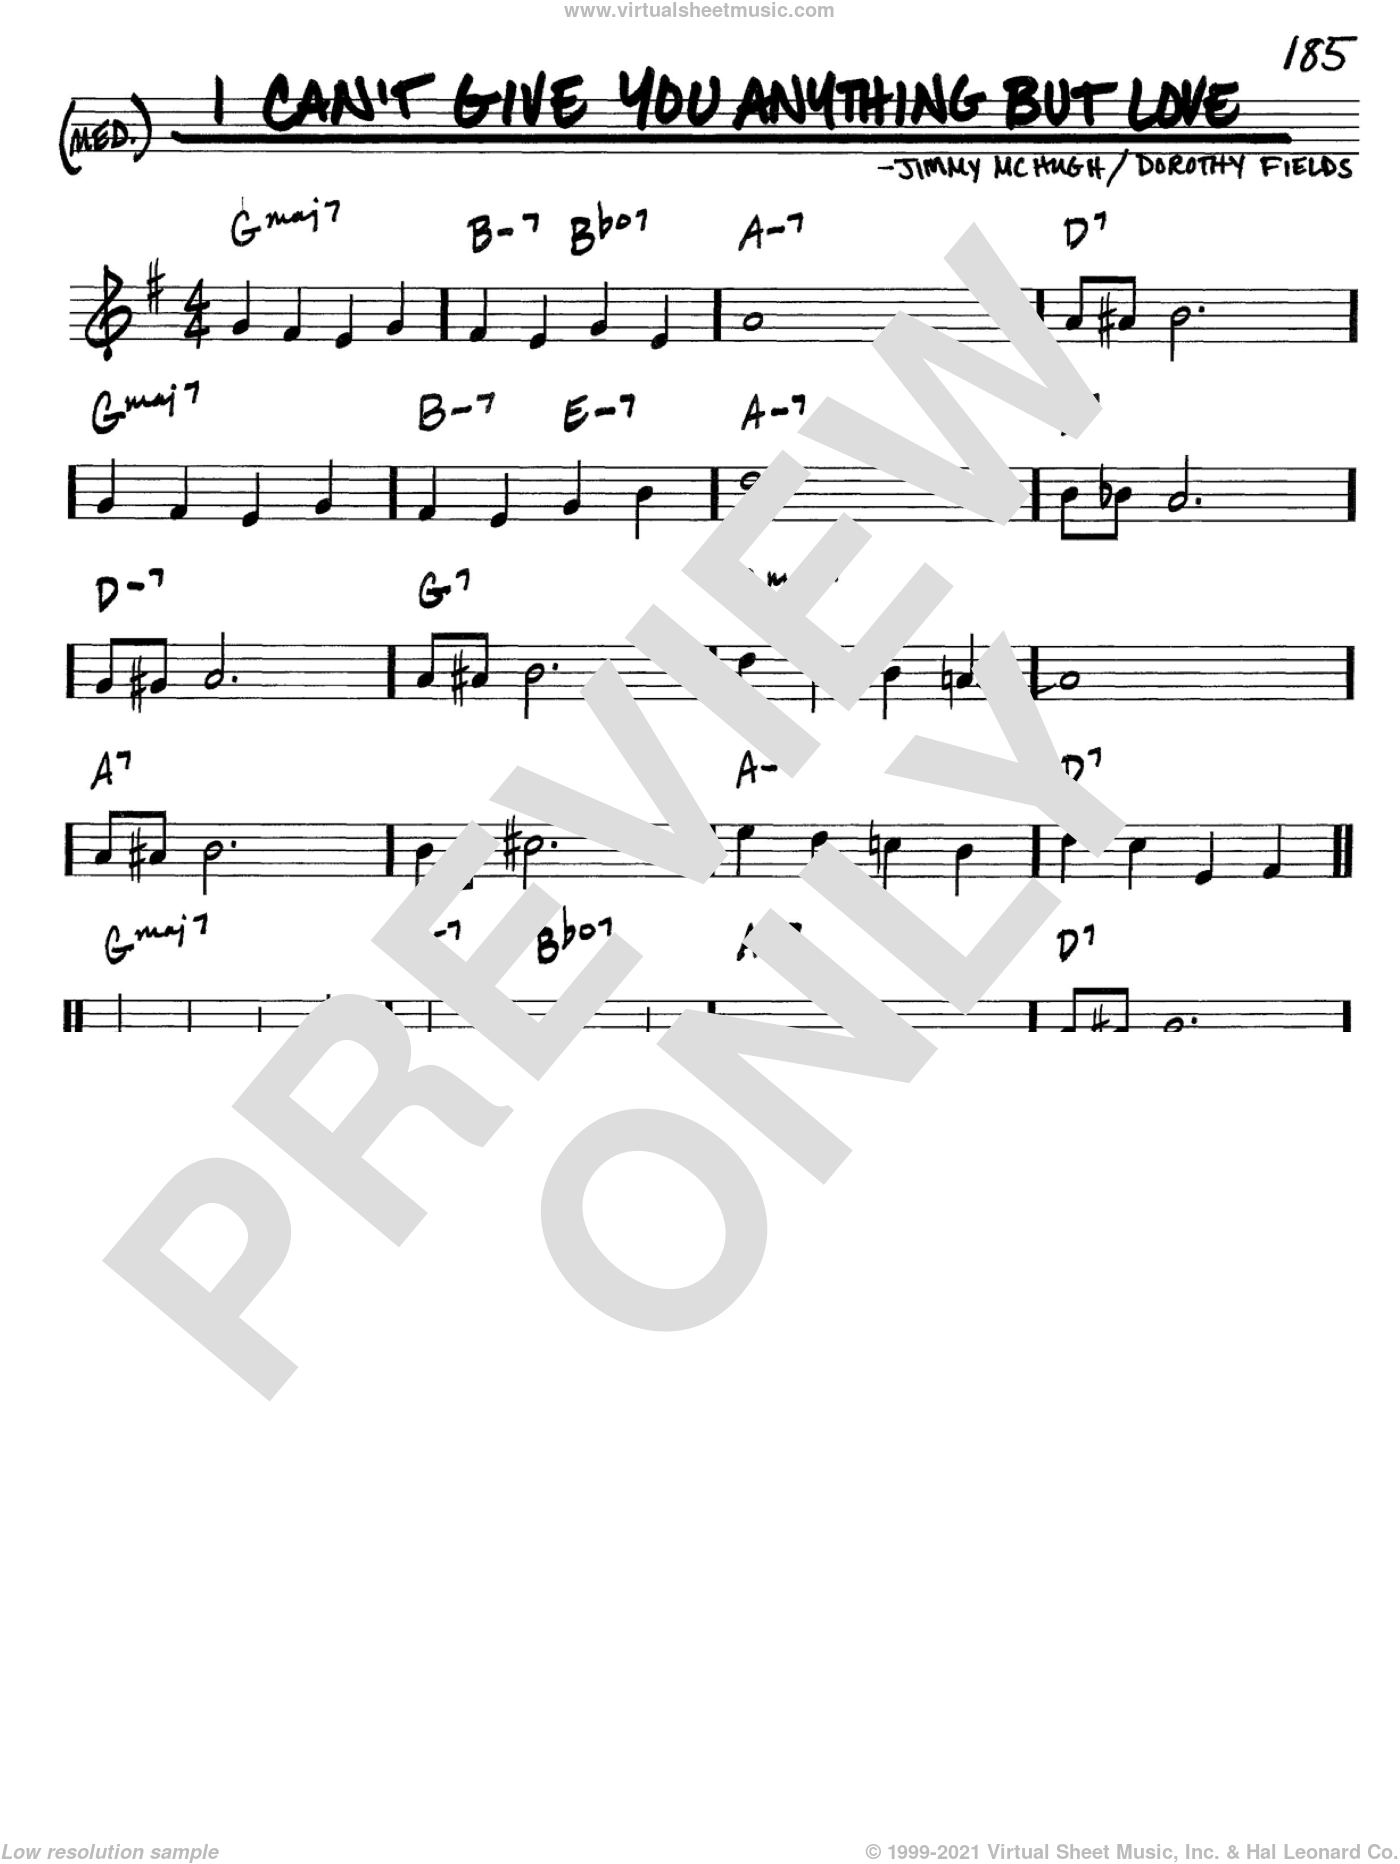 I Can't Give You Anything But Love sheet music for voice and other instruments (C) by Jimmy McHugh and Dorothy Fields. Score Image Preview.